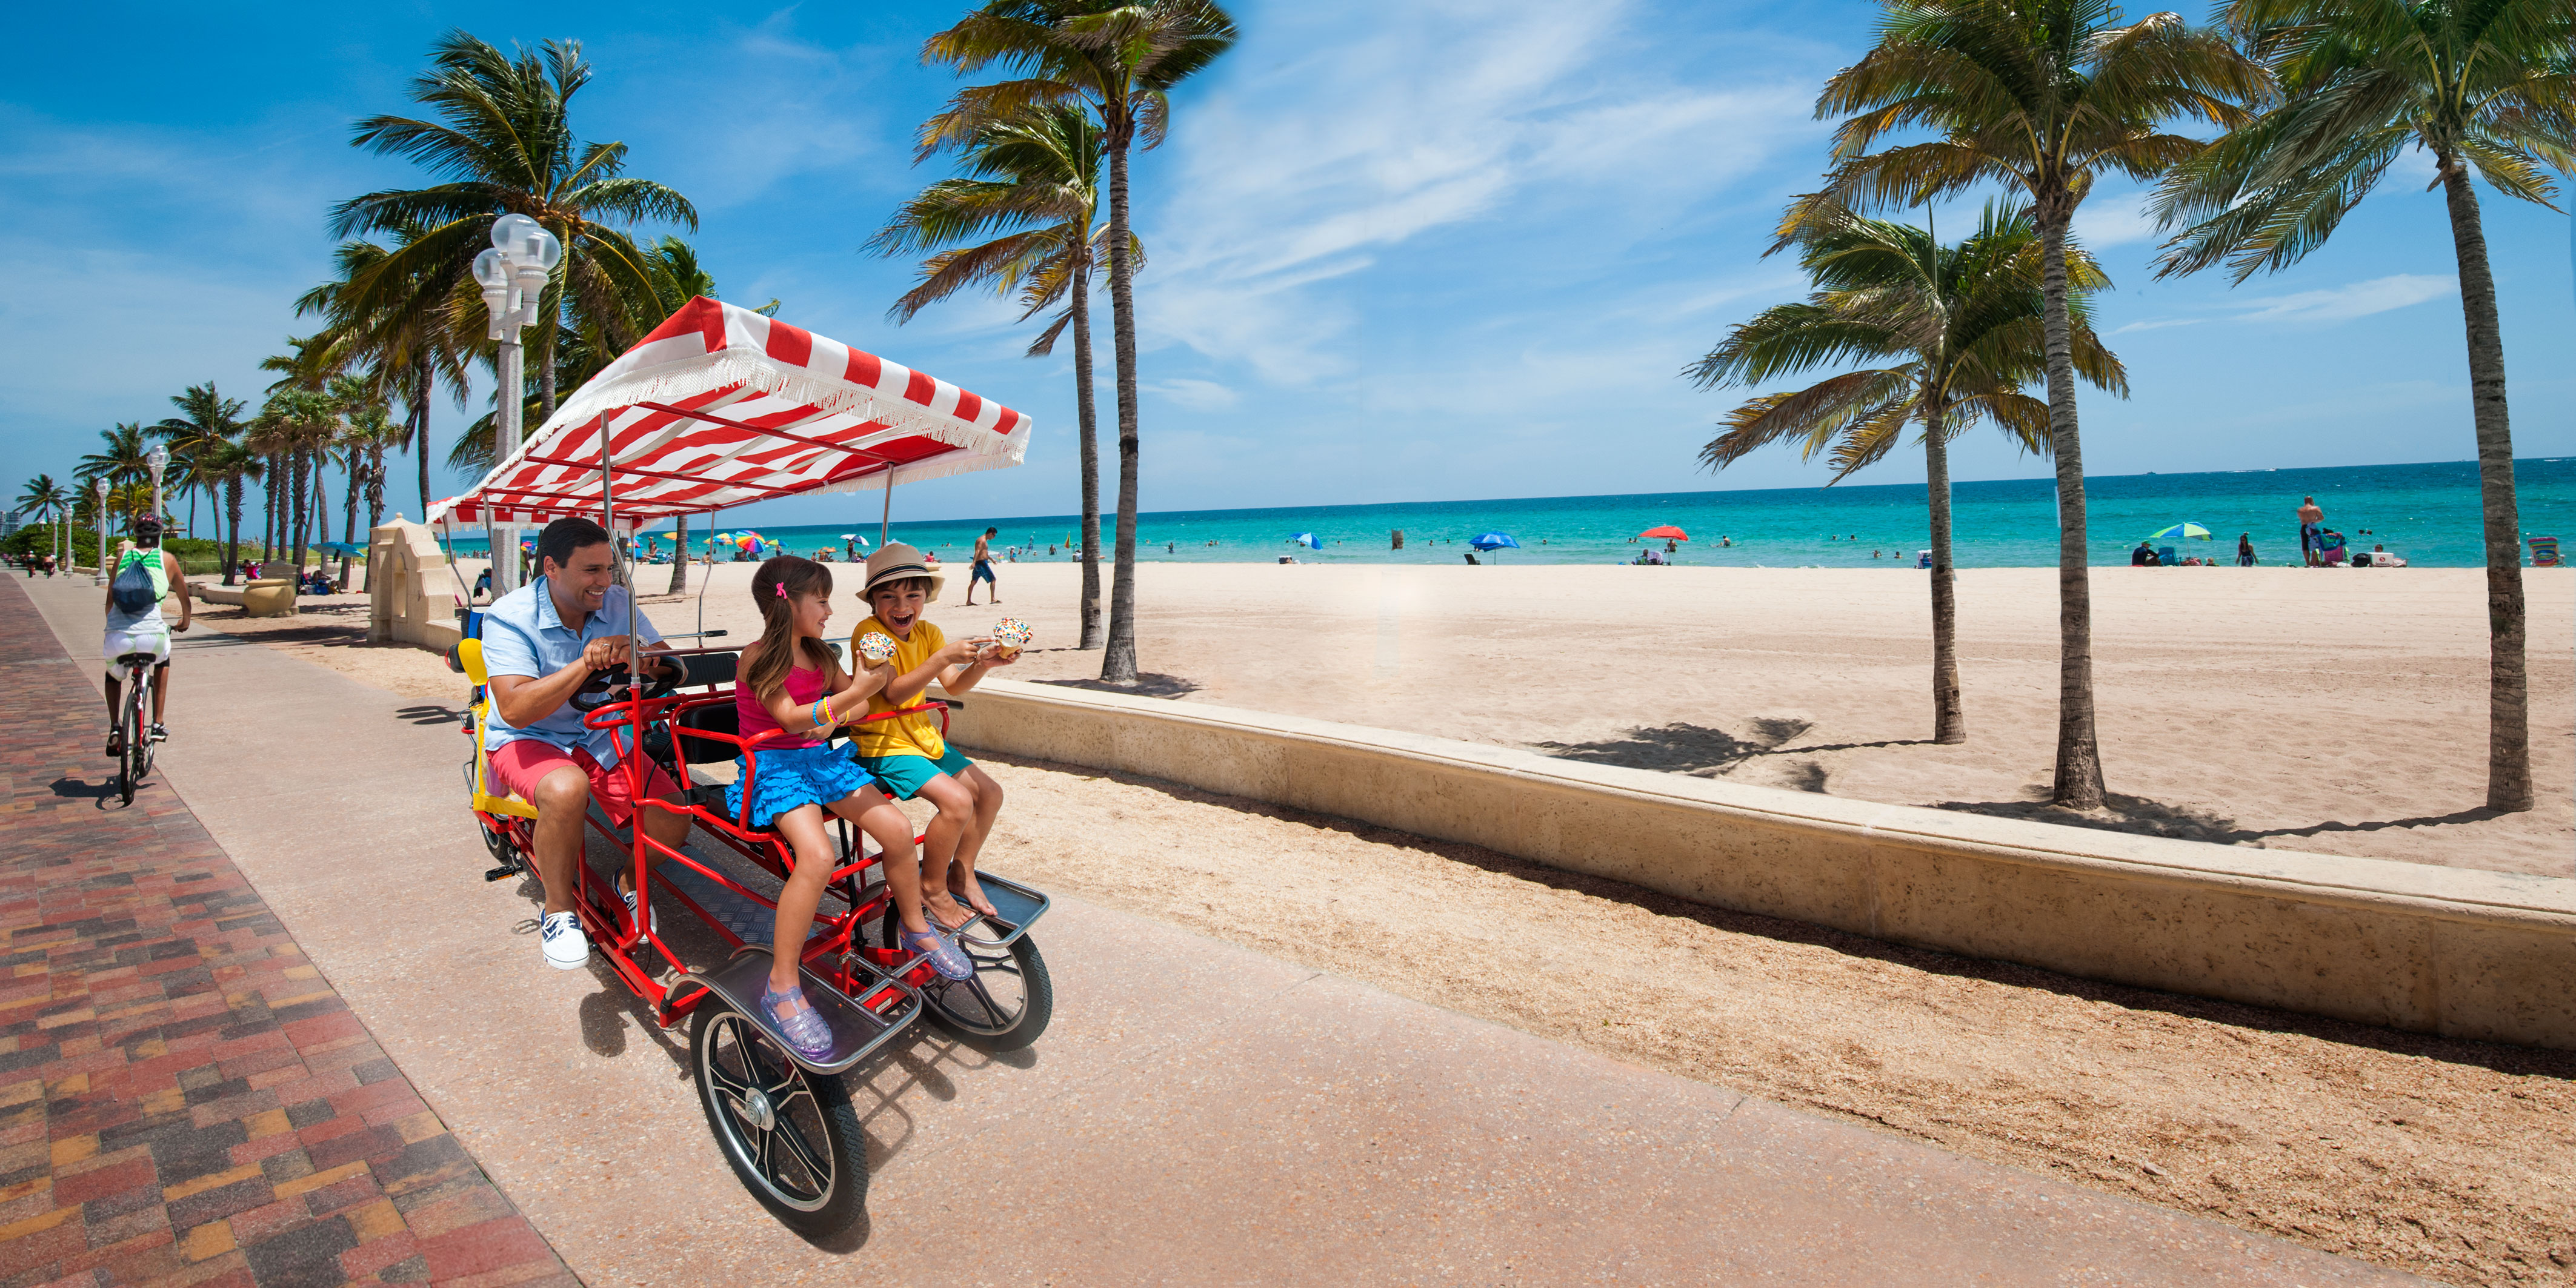 Activities & Things to Do with Kids in Fort Lauderdale